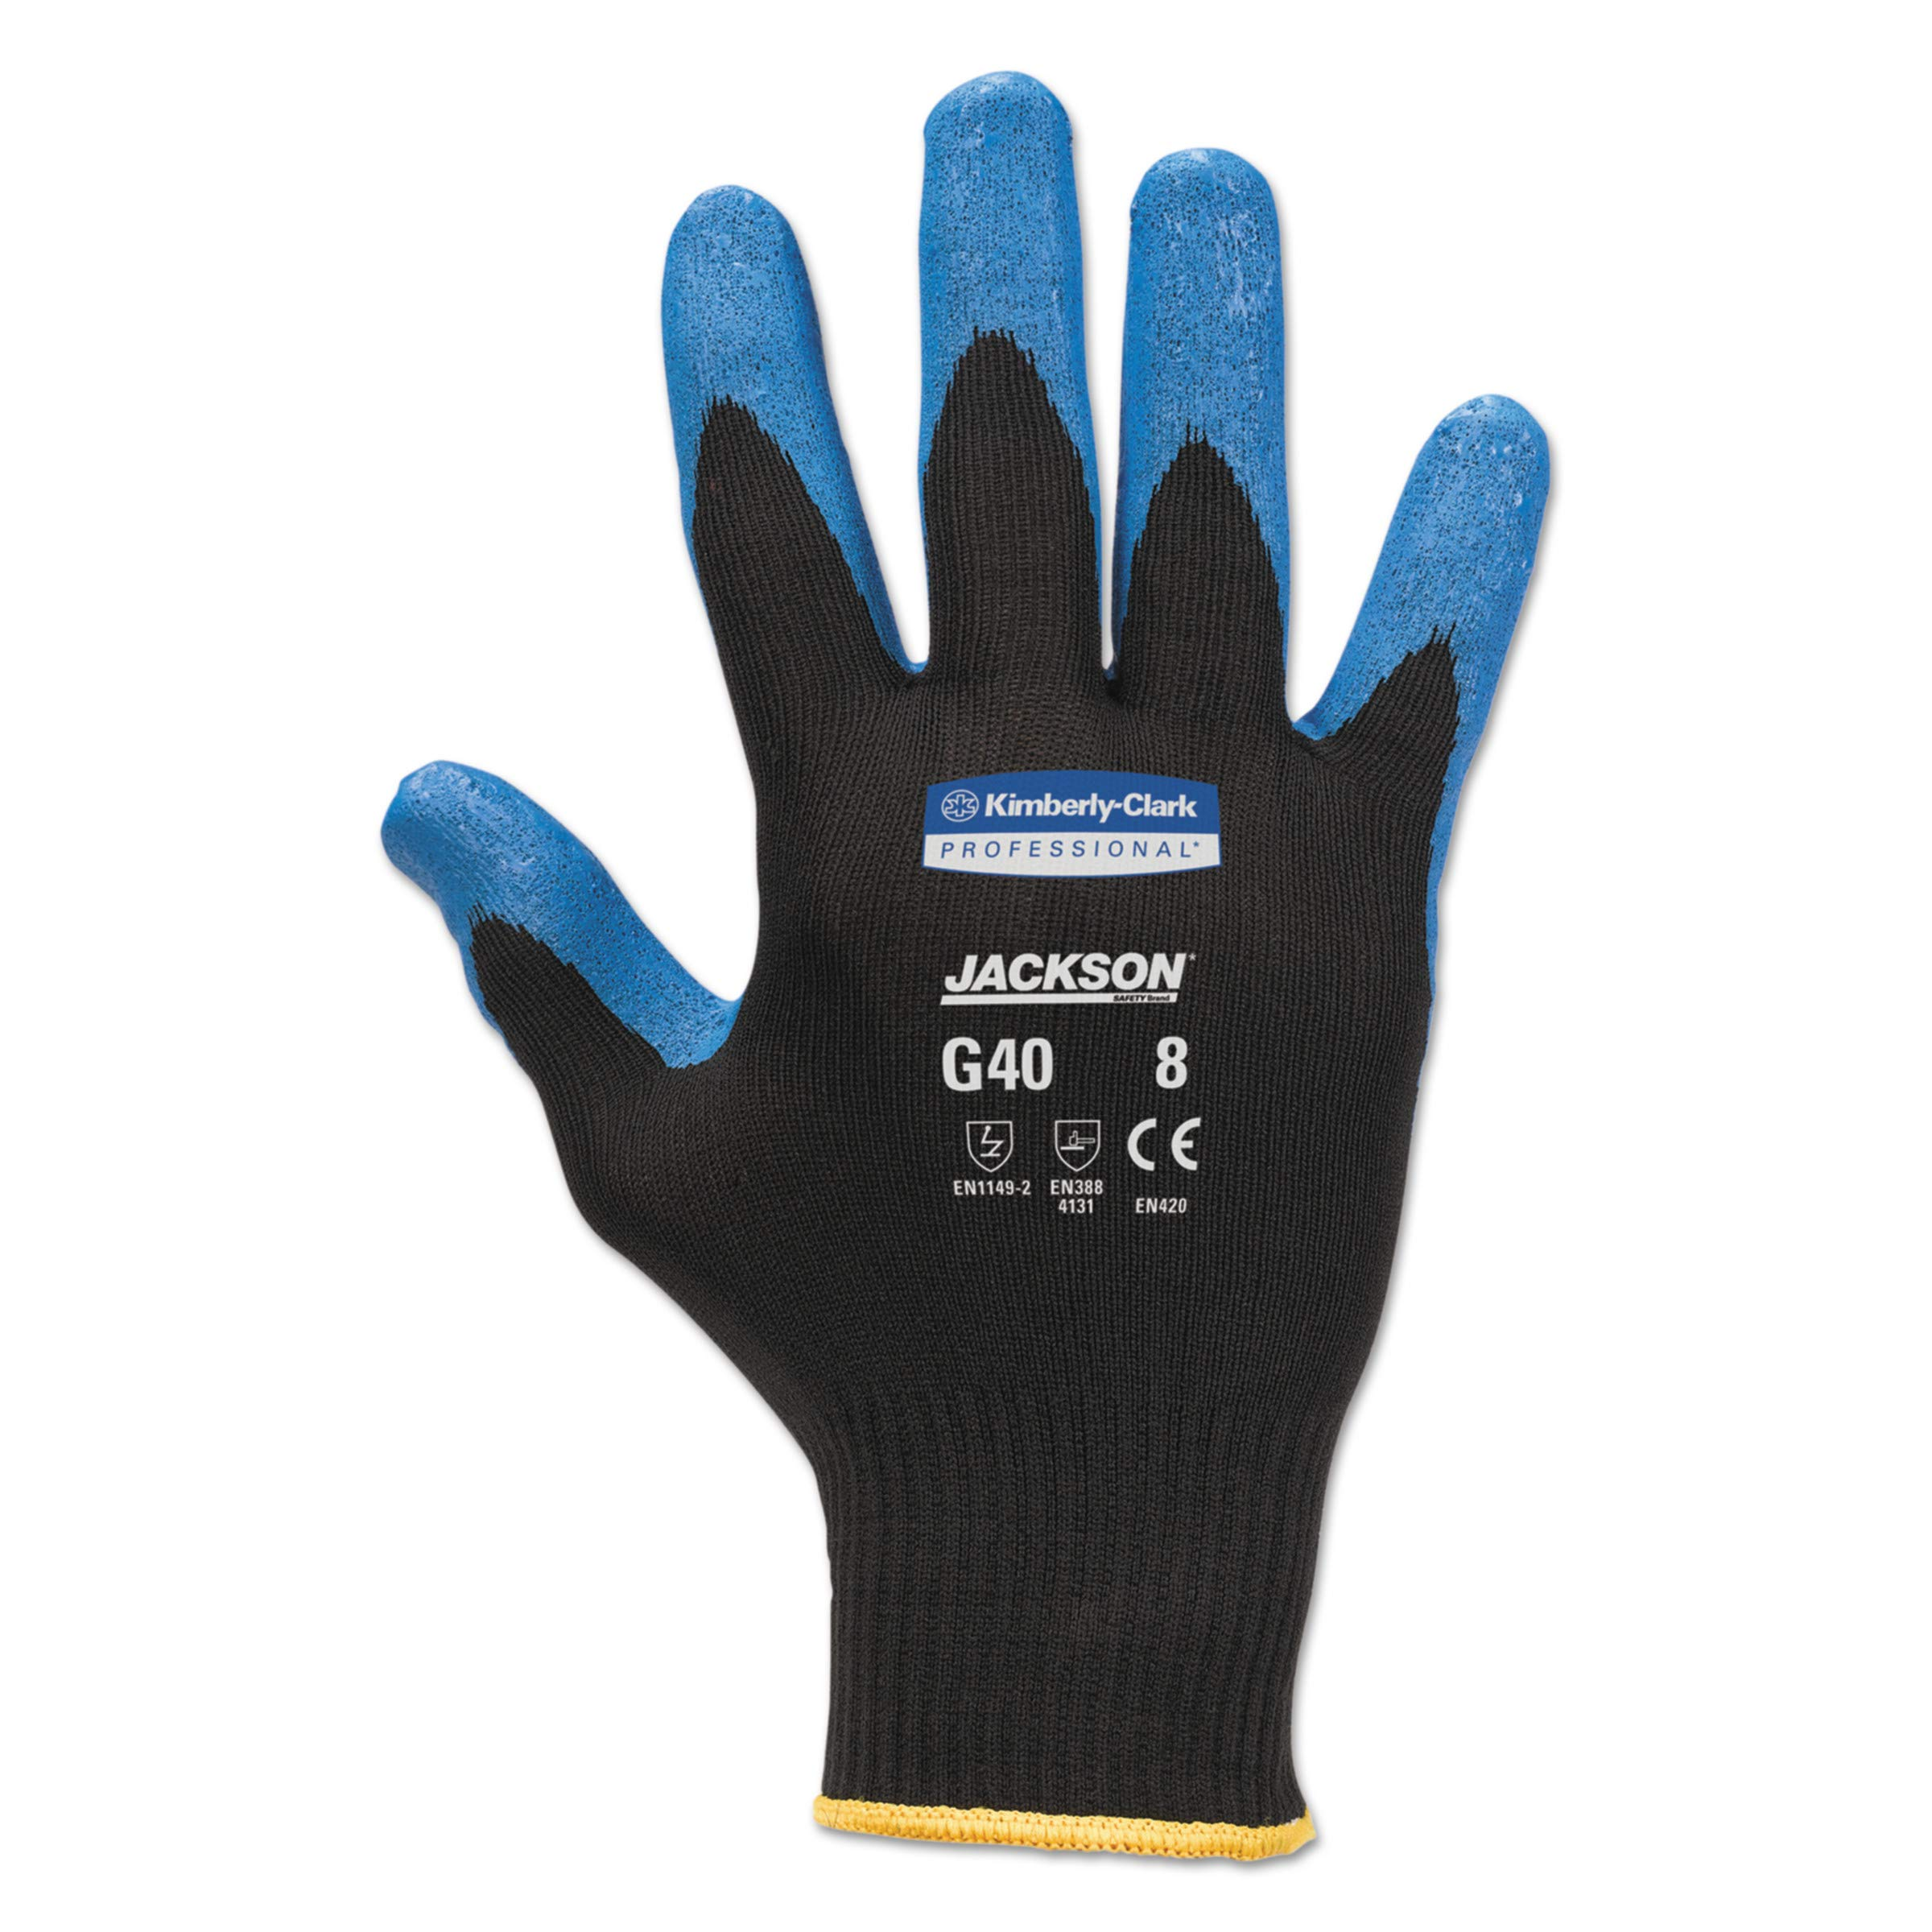 Jackson Safety 40228 G40 Nitrile Coated Gloves, 250 mm Length, X-Large/Size 10, Blue (Pack of 12 Pairs)